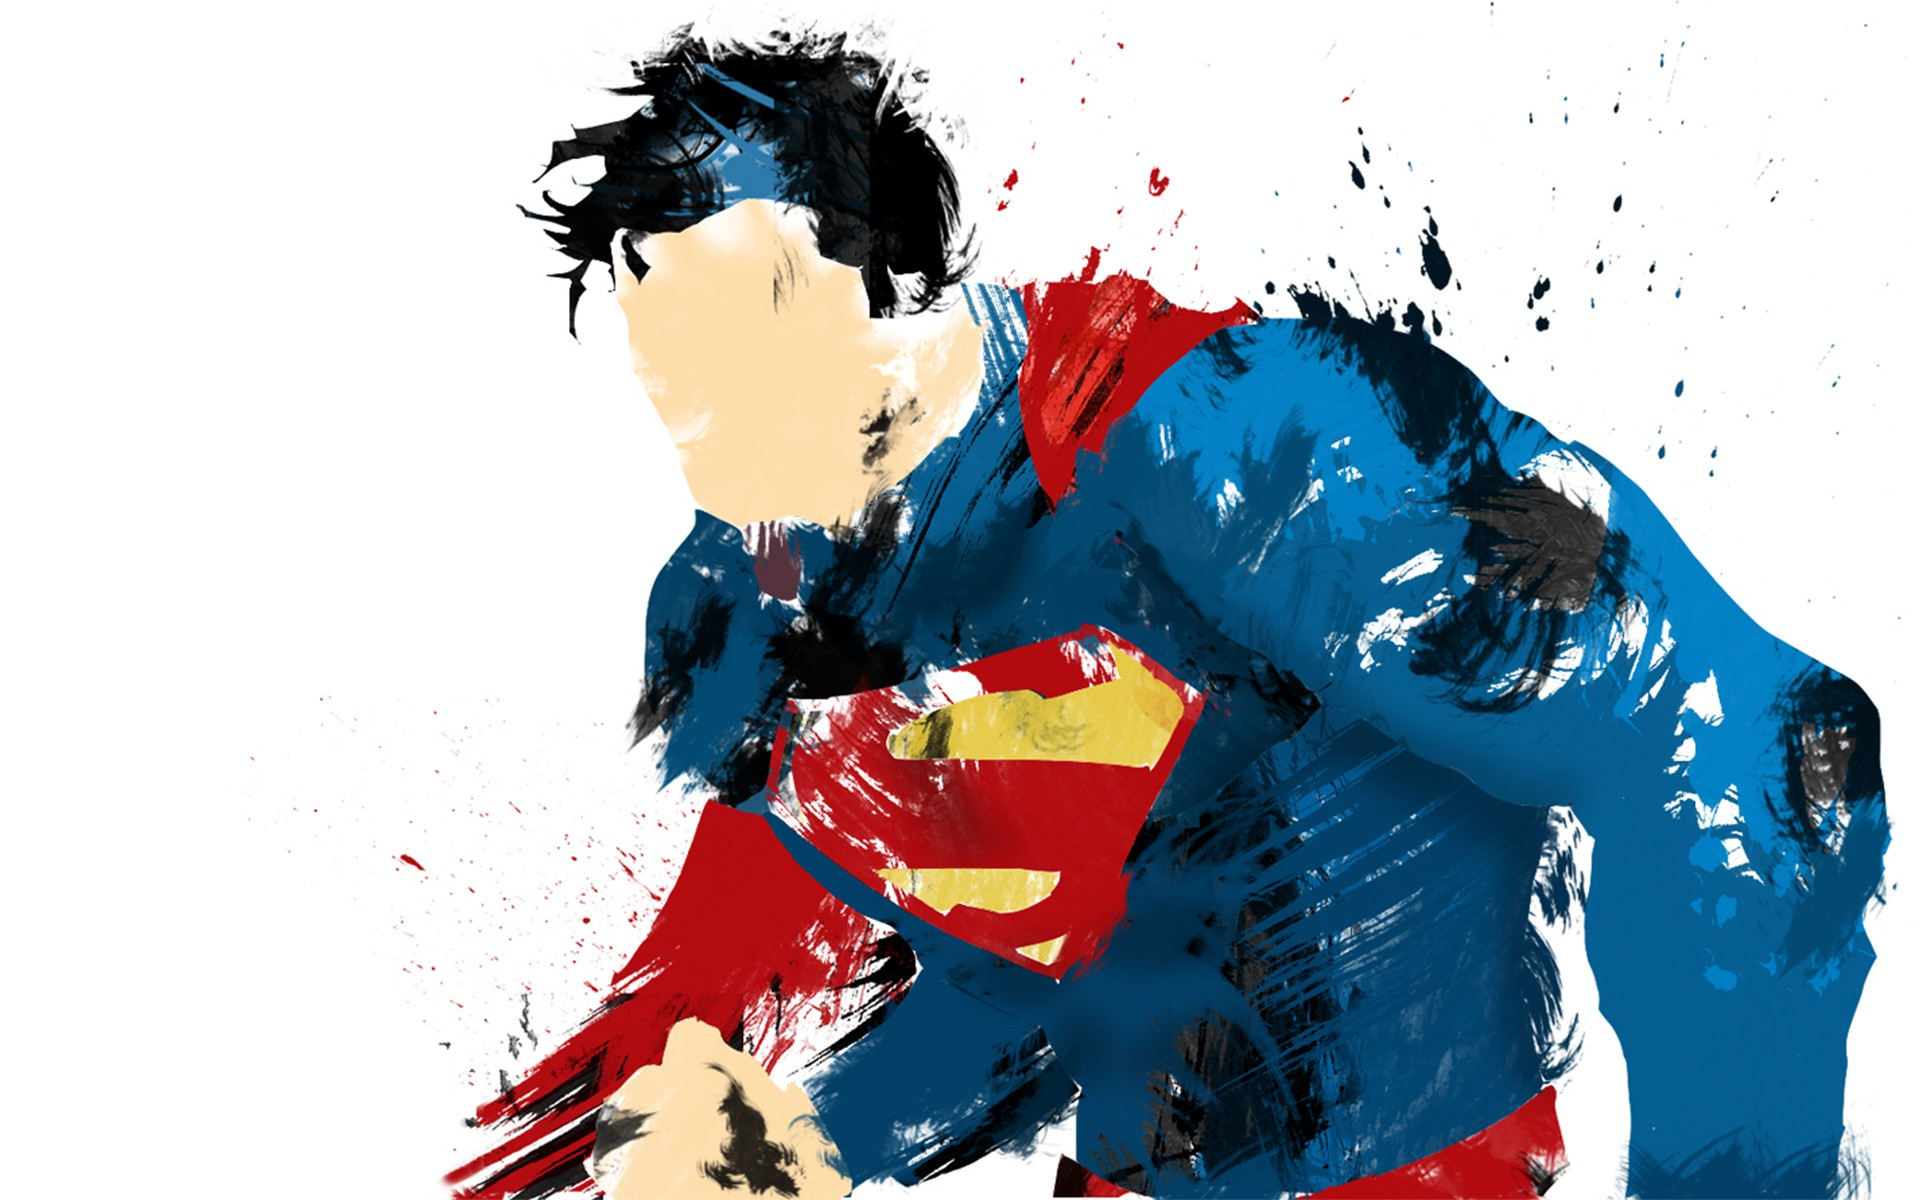 superman comic art wallpaper - photo #28